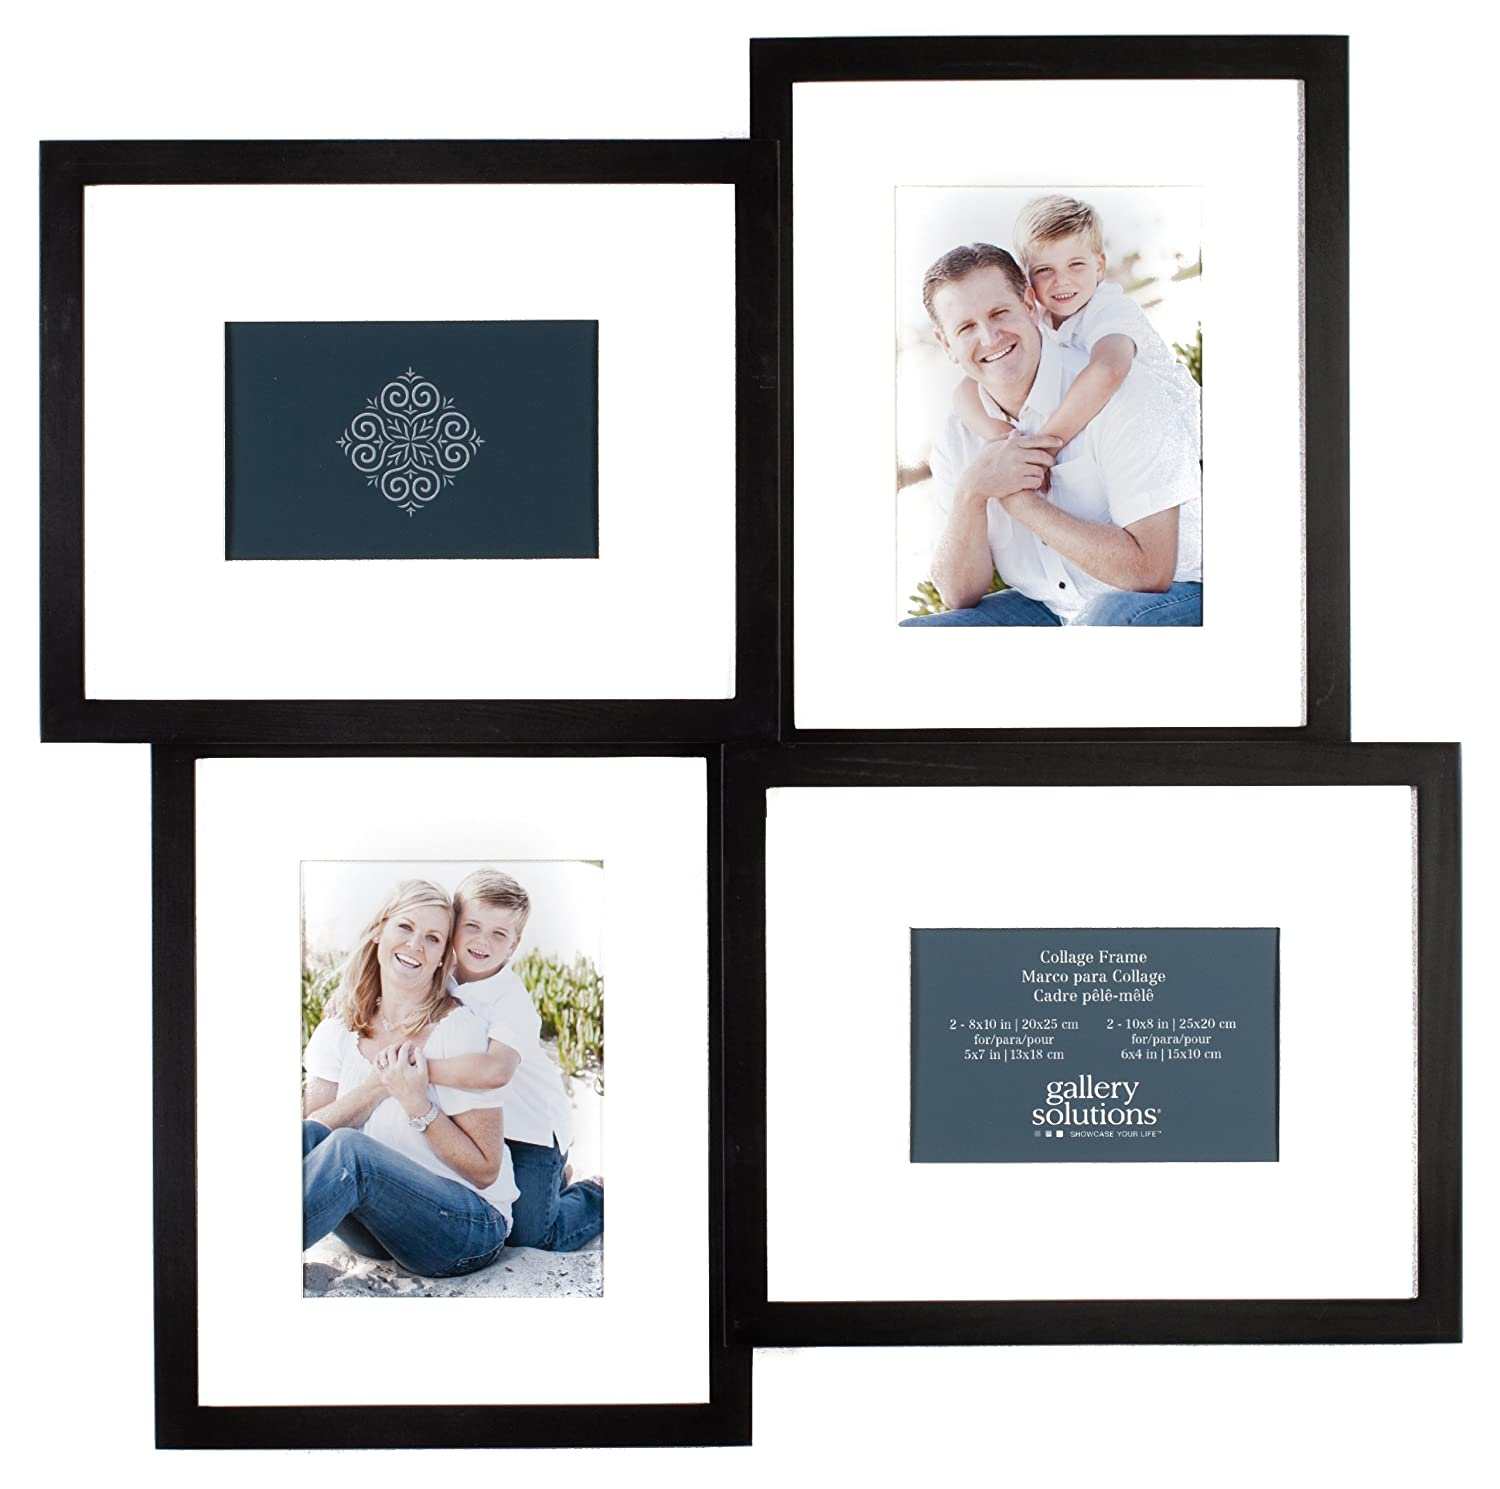 Amazon.com - Pinnacle 4-Opening Gallery Solutions 3D Collage Frame ...